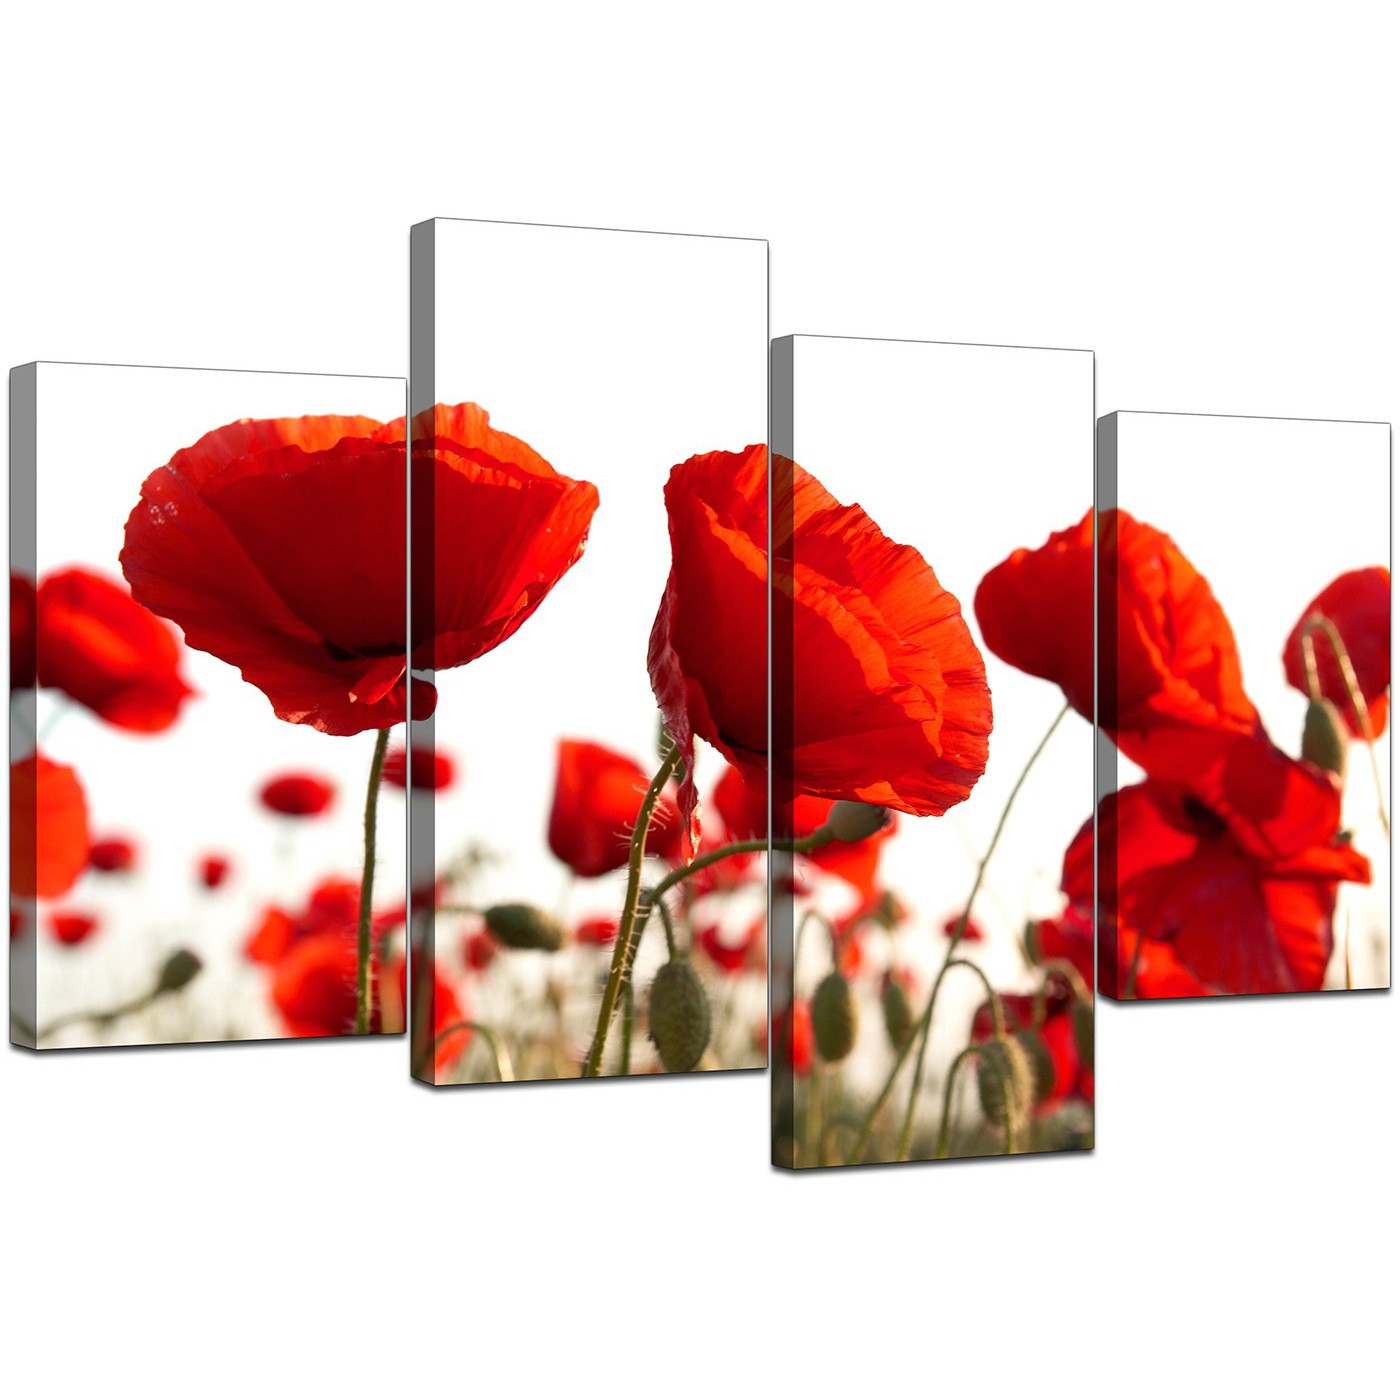 Canvas Prints Uk Of Poppy In Red For Your Living Room